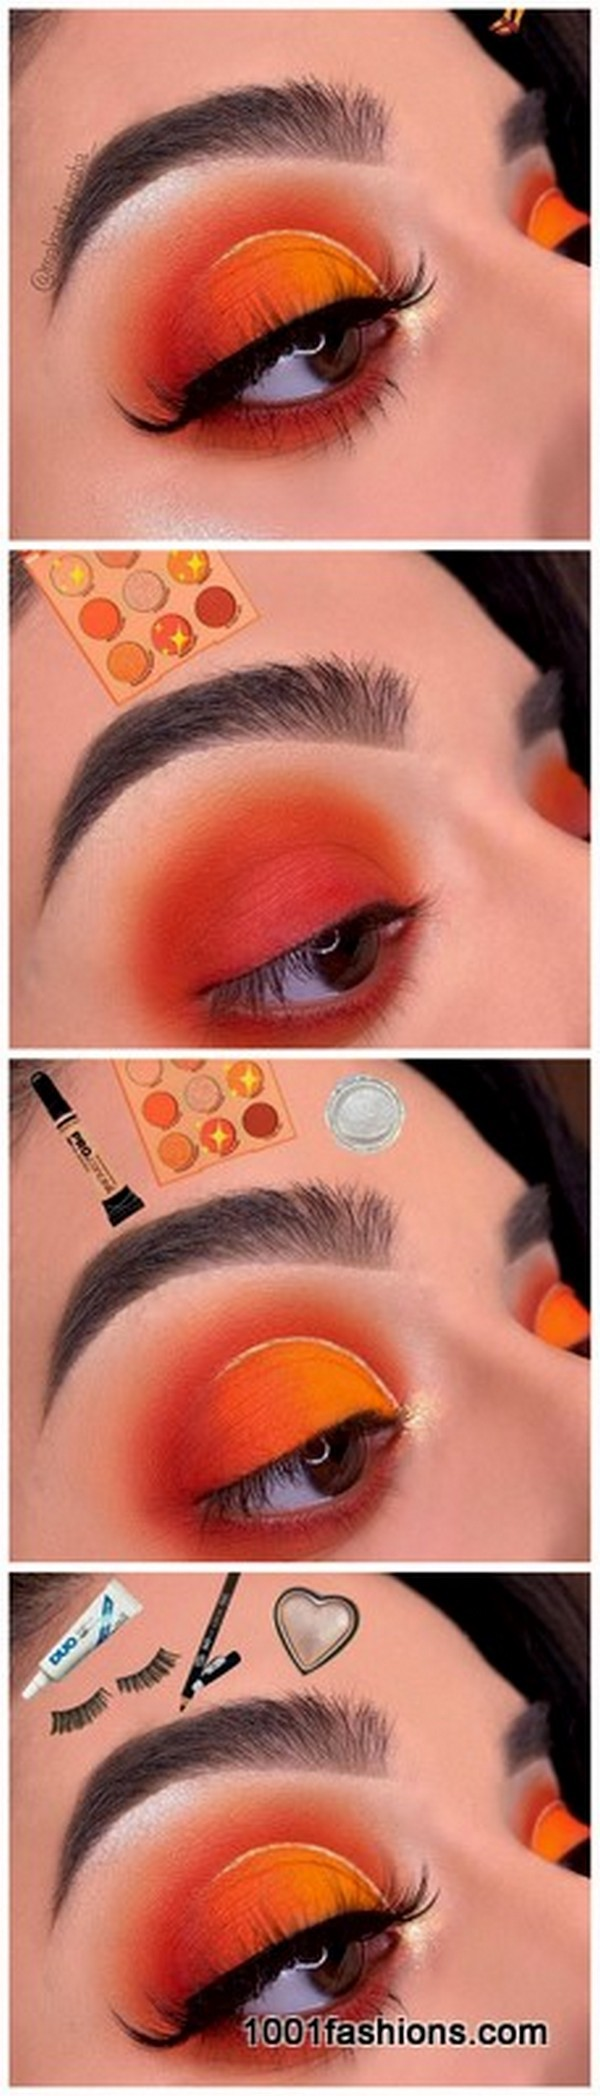 Fabulous And Stylish Party Makeup Ideas For This Beginners By 1001 Fashions Medium